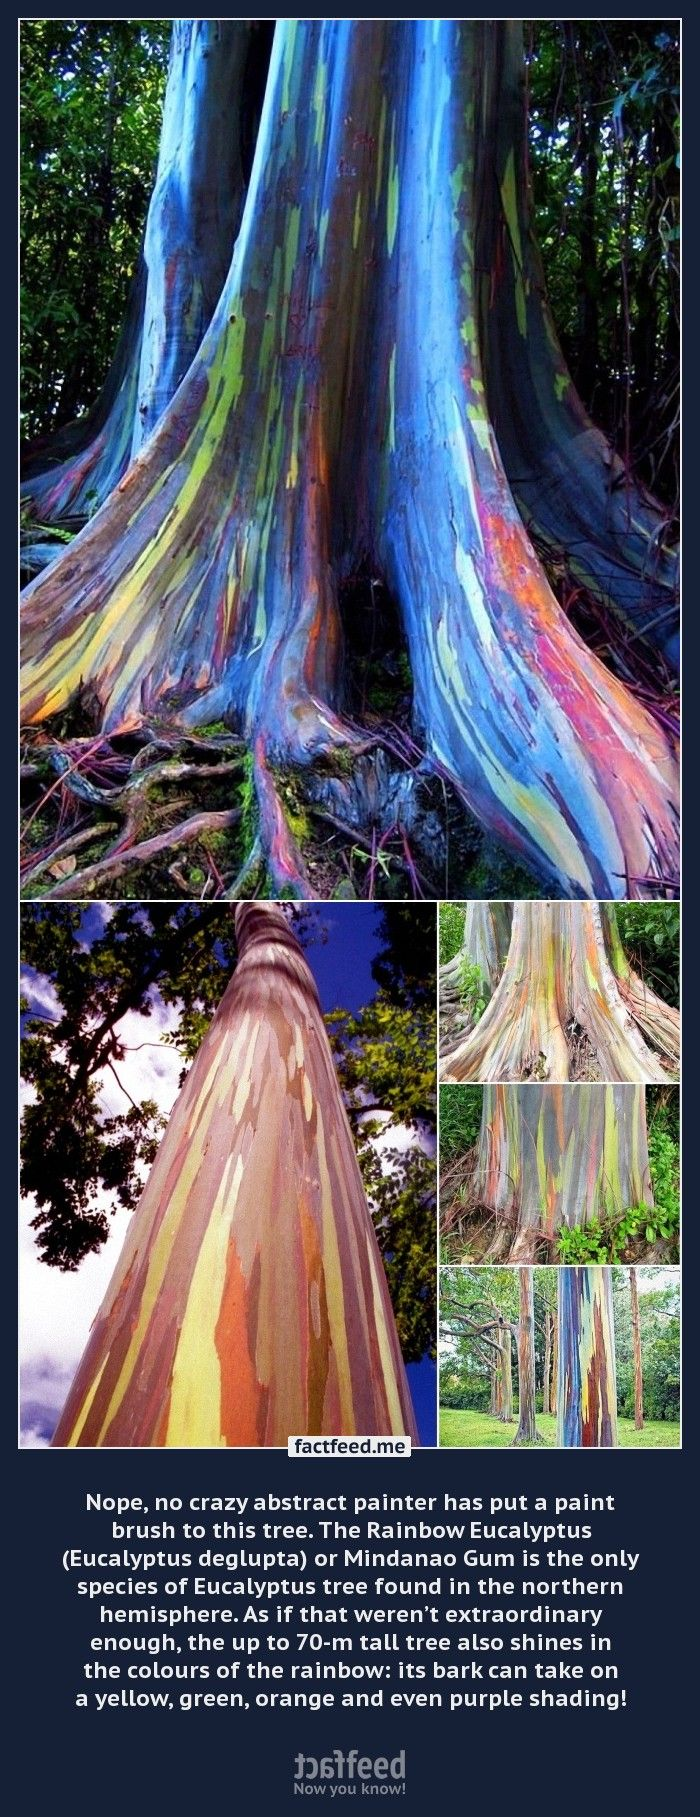 Nope, no crazy abstract painter has put a paint brush to this tree. Meet the Rainbow Eucalyptus.